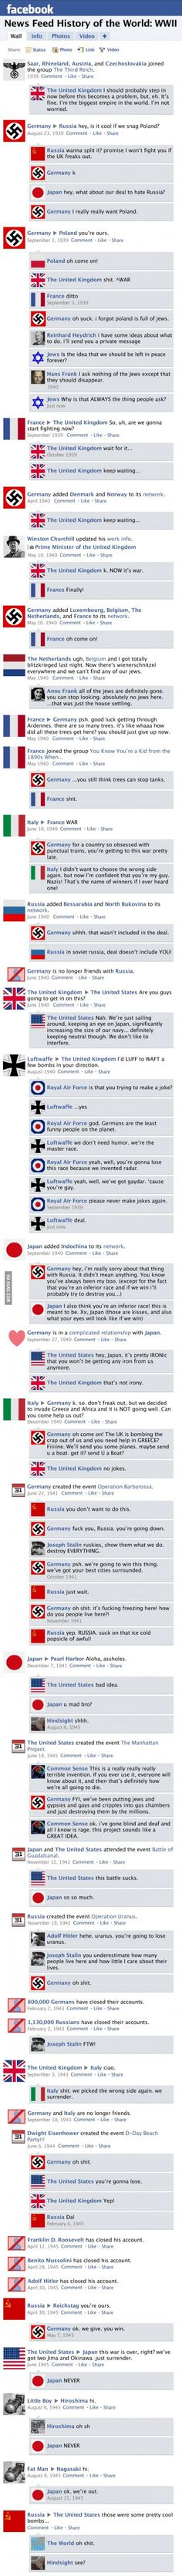 Facebook History: WWII